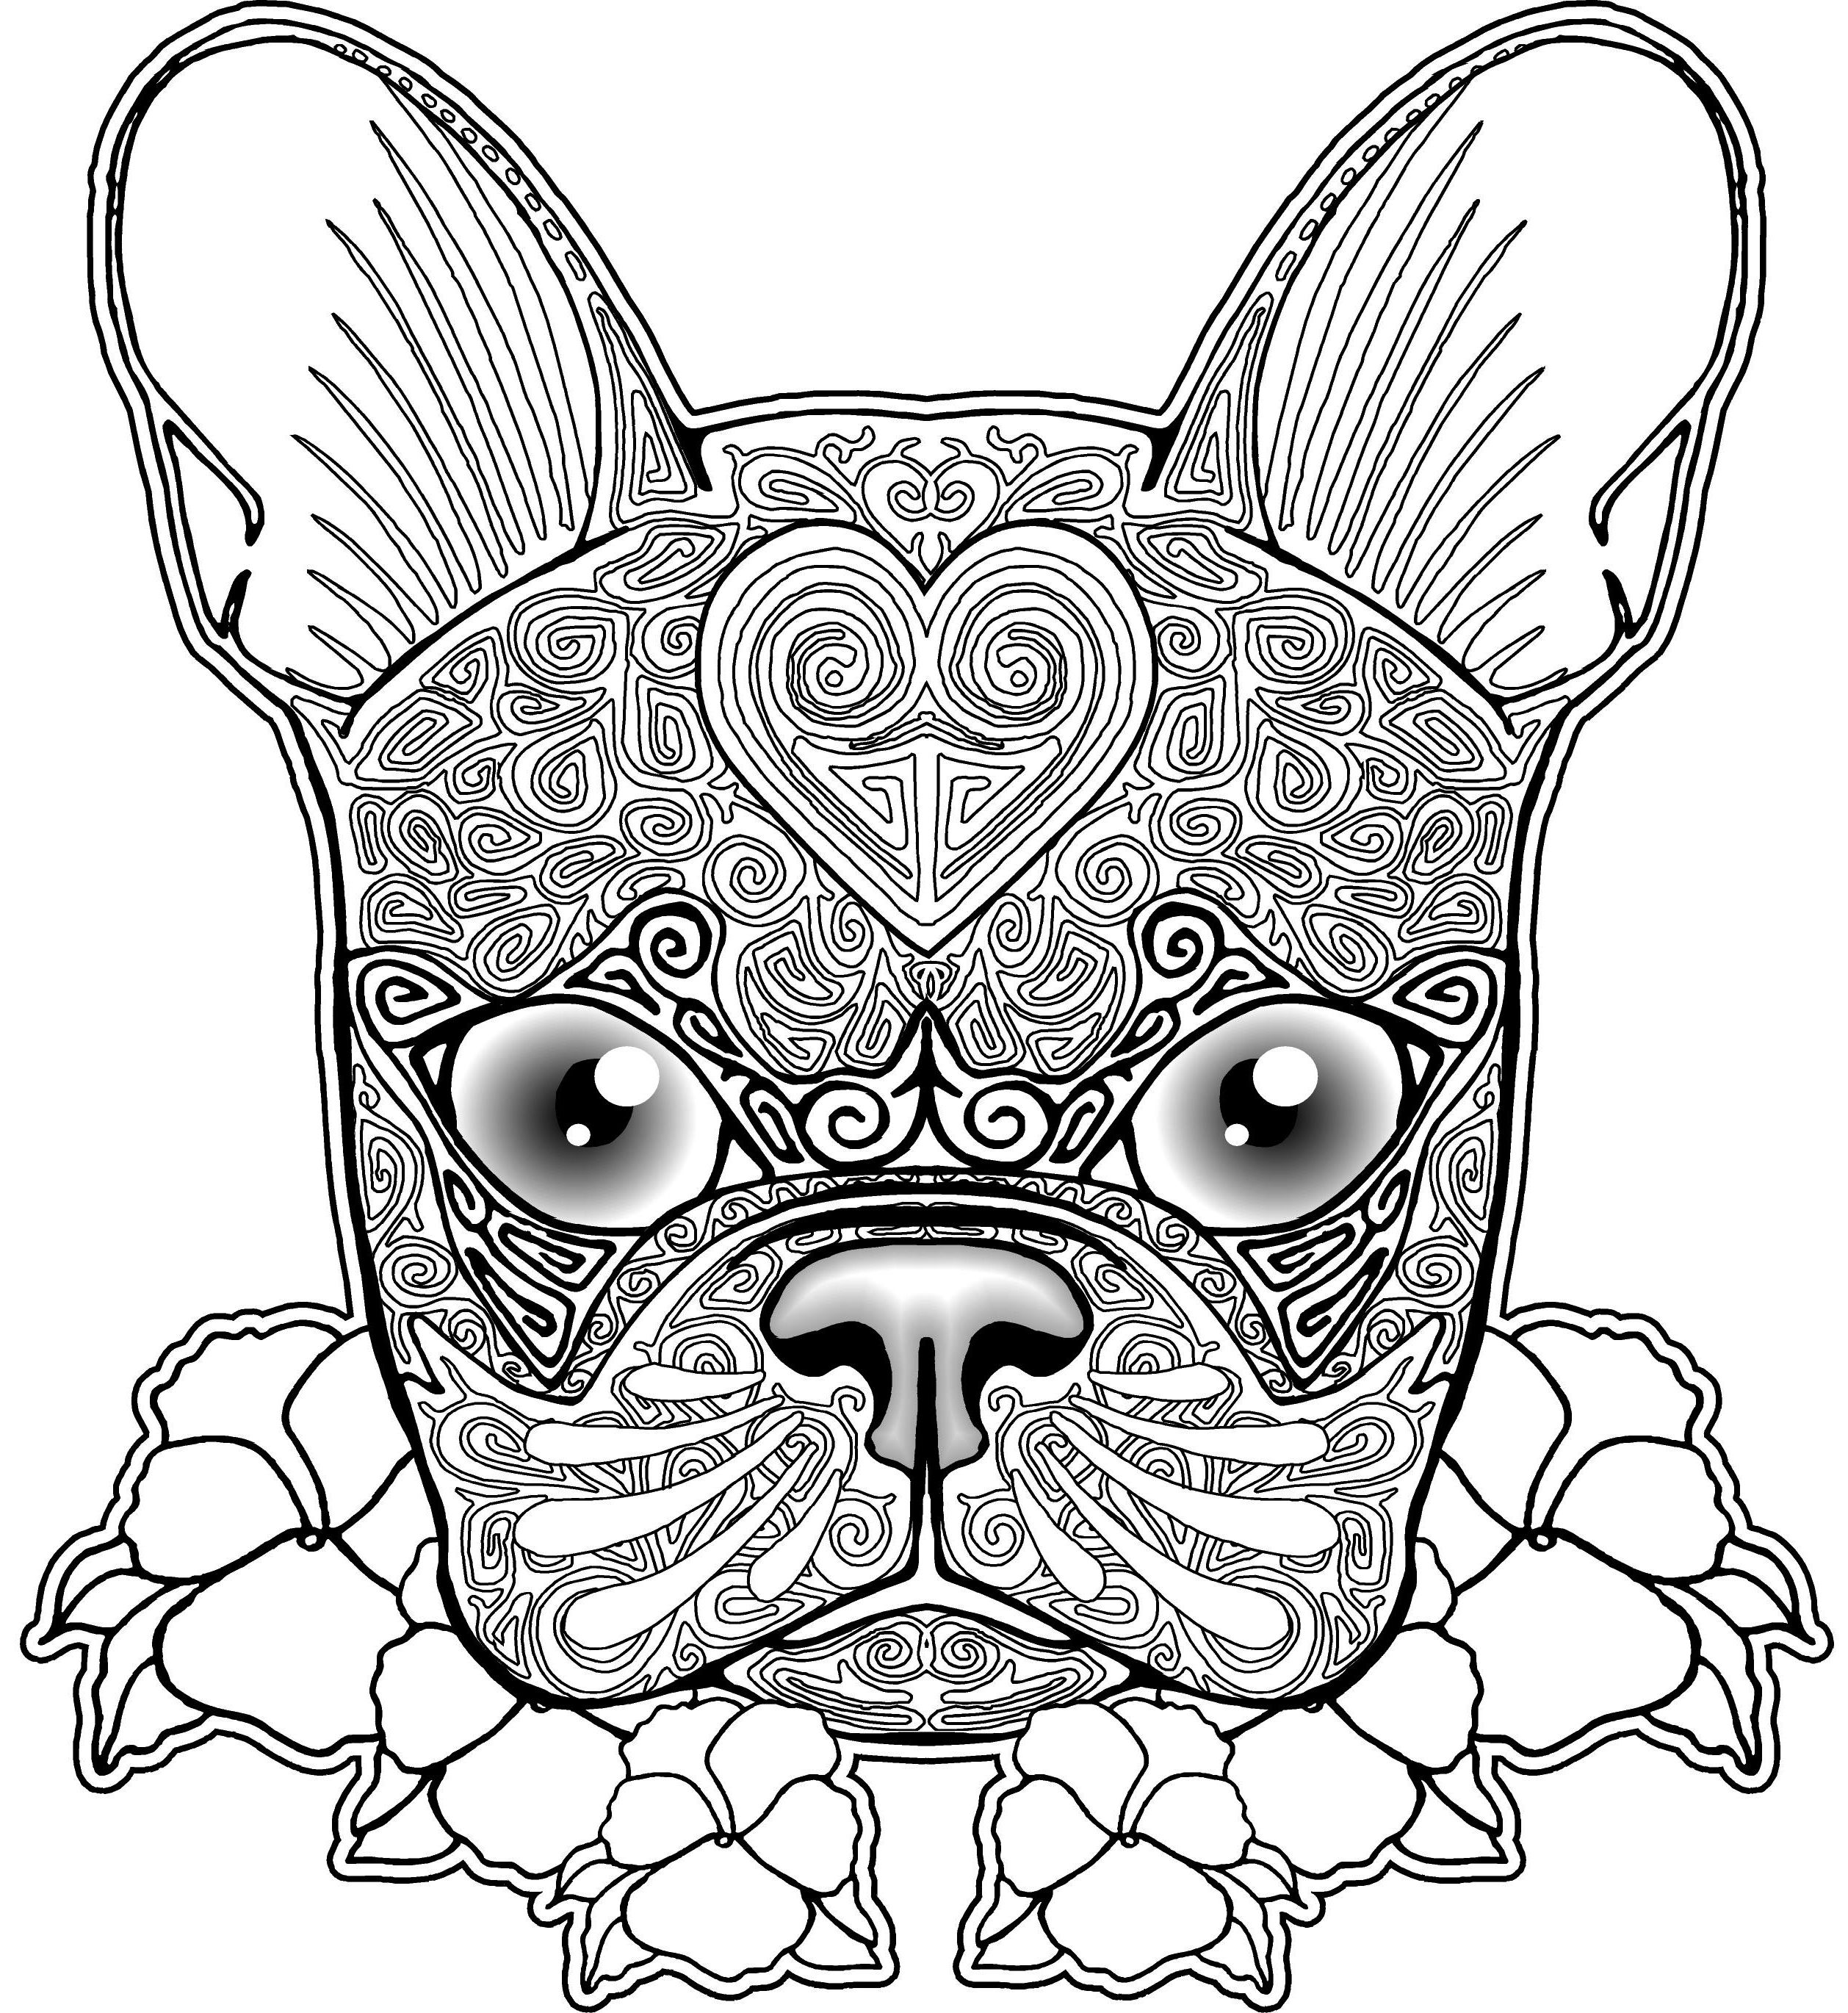 coloring pages for adults dogs dogs coloring pages difficult adult coloring home adults coloring for pages dogs